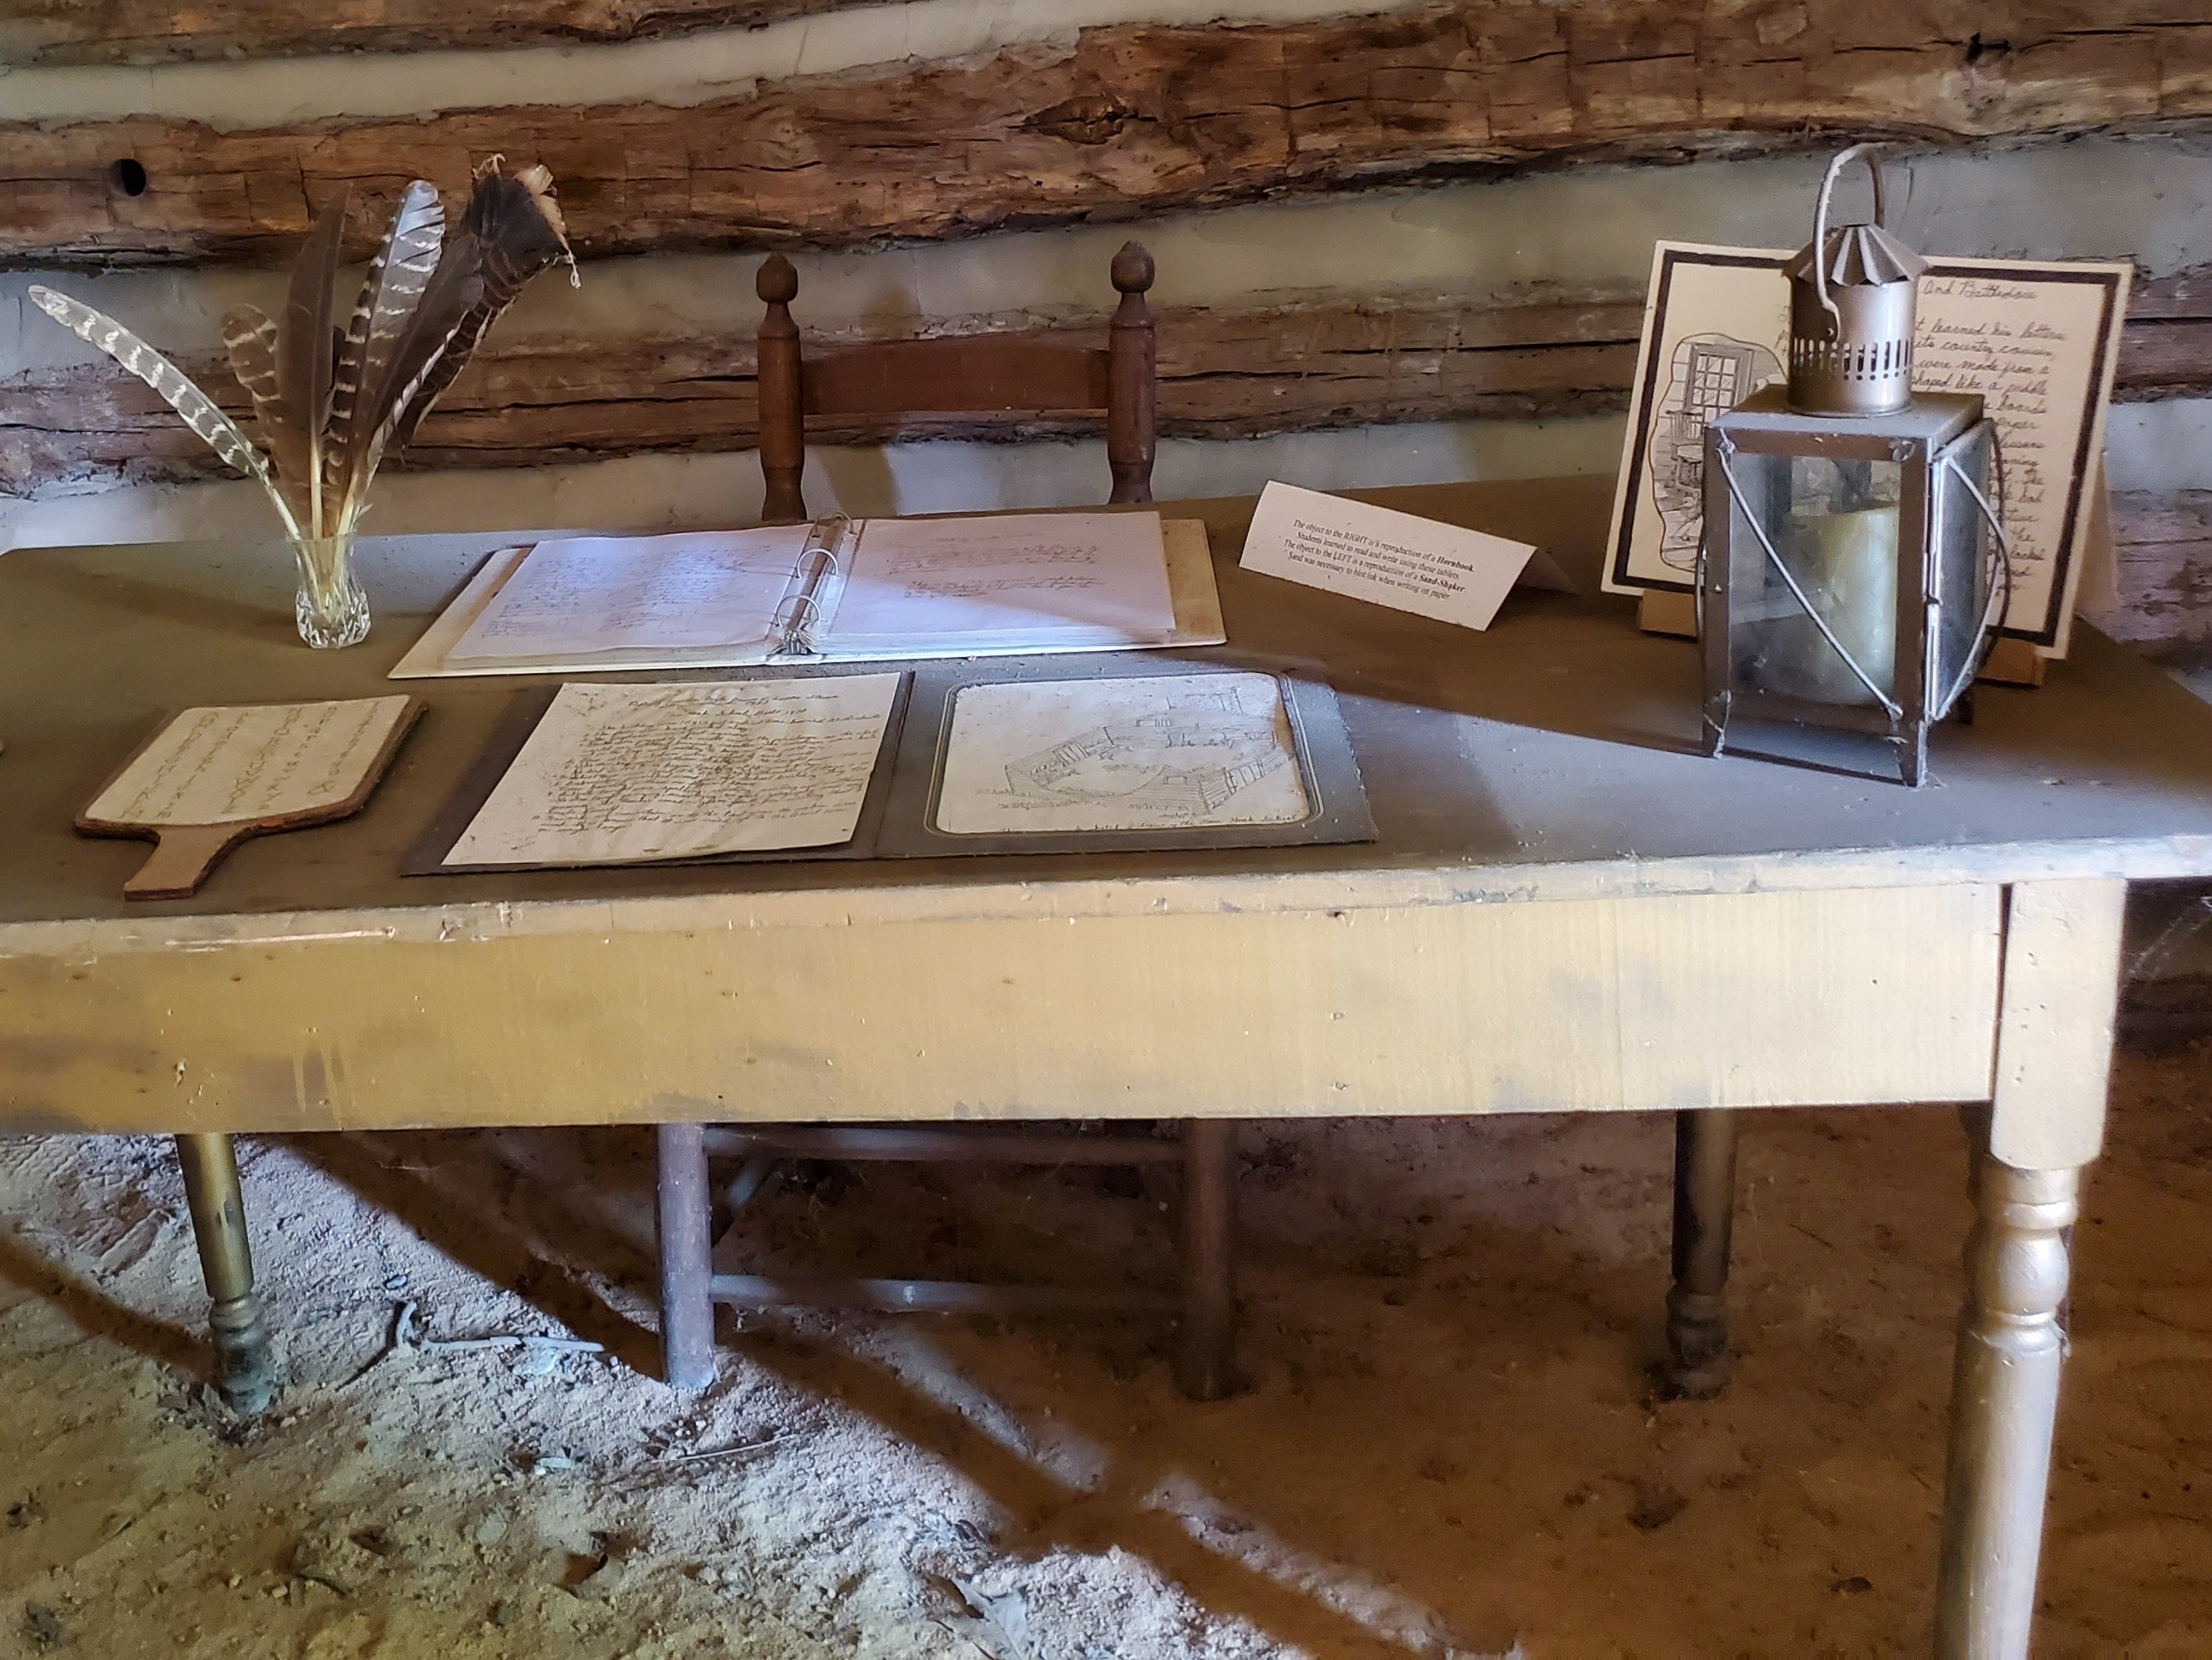 This was the desk of Schoolmaster William Whitefield who was the teacher at the Van Hook Subscription School from 1810-1857.